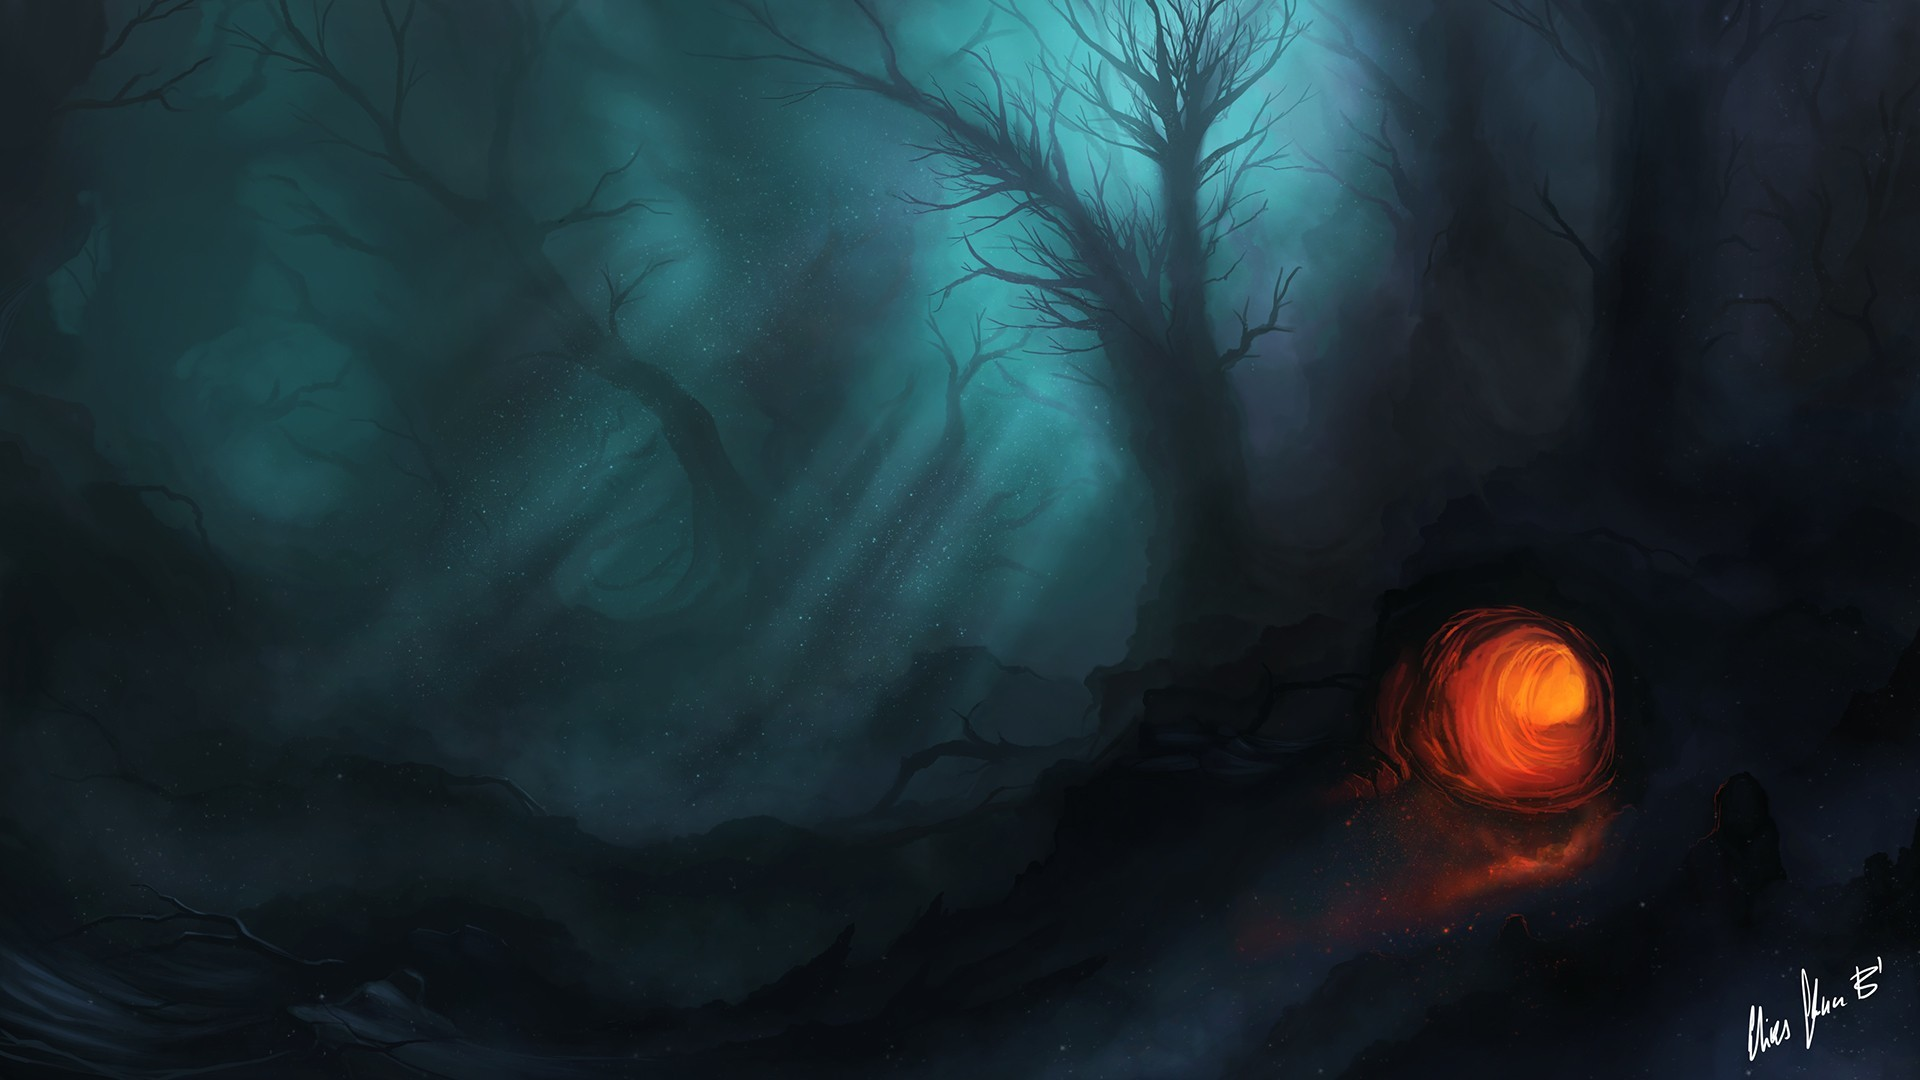 1920x1080 Artwork Dark Fantasy Art Forests Night Trees